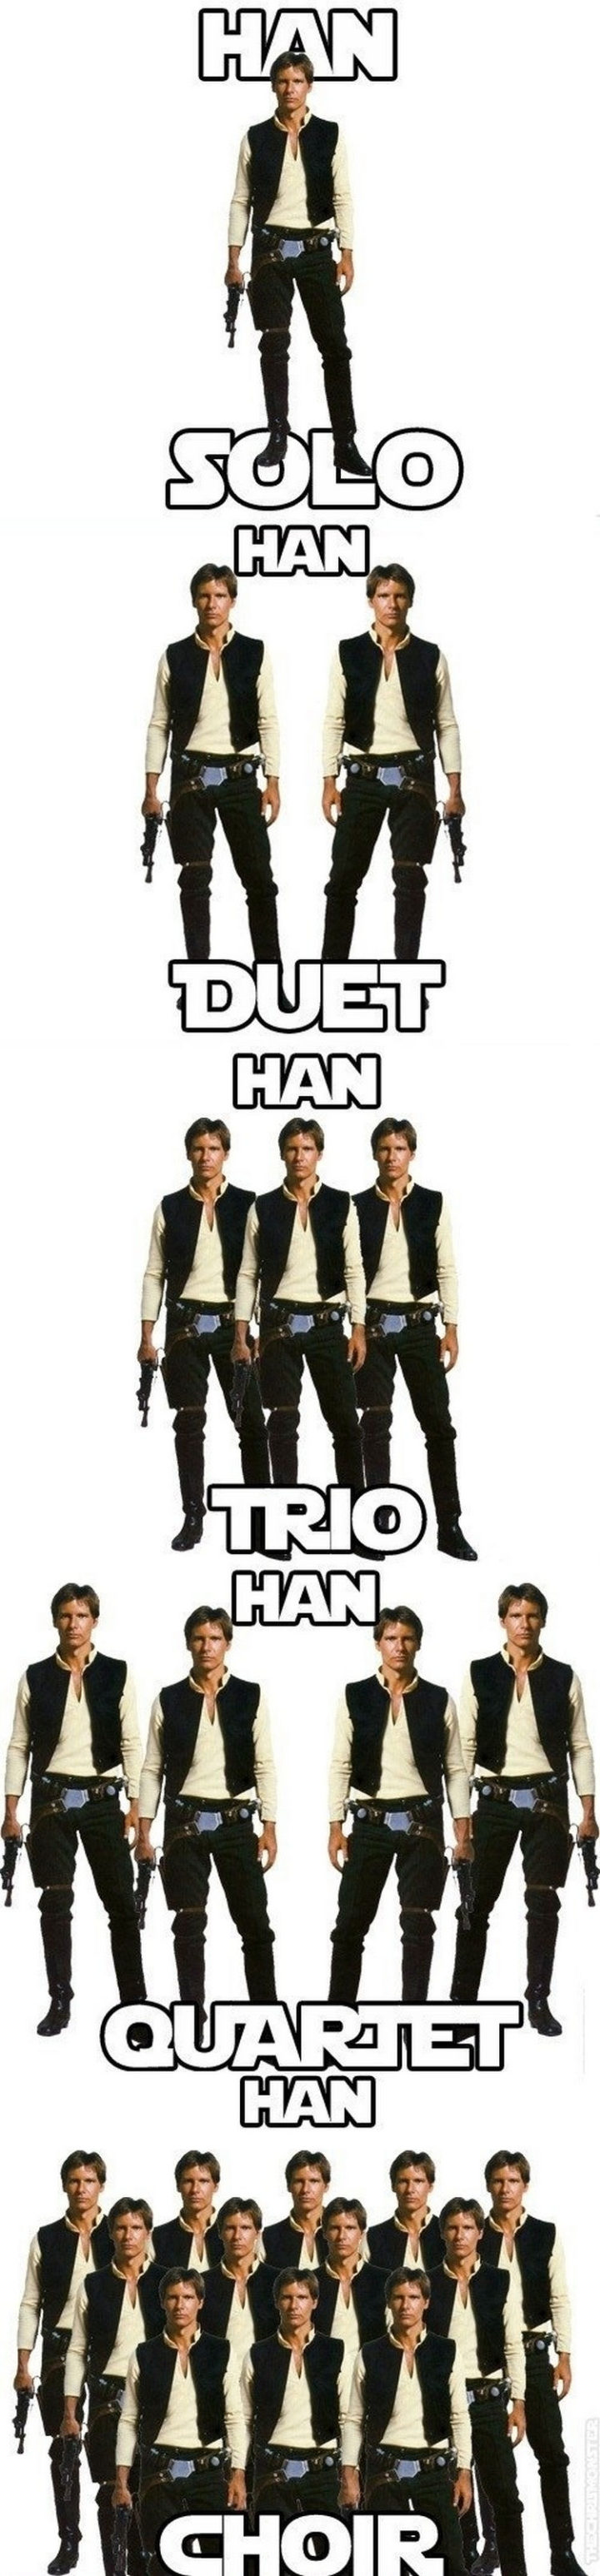 55 Hilariously Funny Celebrity Name Puns - Han Solo.